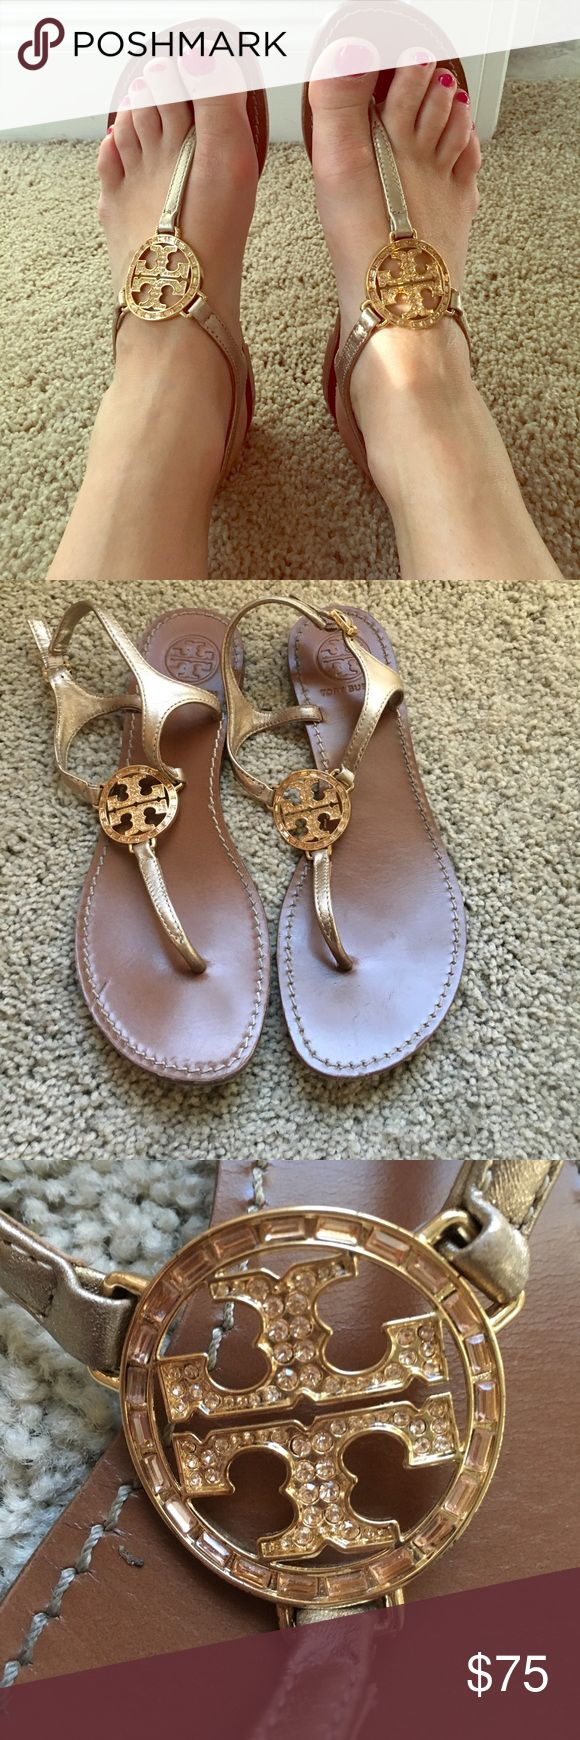 EUC Tory Burch flip flop sandals. Gold. Size 7. Excellent used condition Tory Burch Gold Flip Flop Sandals. Leather with metal TB Logo. No rips or stains on the leather. No tarnish or discoloration on metal logo. Bottoms of shoes show wear as pictured. These shoes are in great condition and are begging for a new home! Perfect for spring/ summer.   Authentic Tory Burch purchased from Nordstrom.  No trades. Only reasonable offers. Tory Burch Shoes Sandals